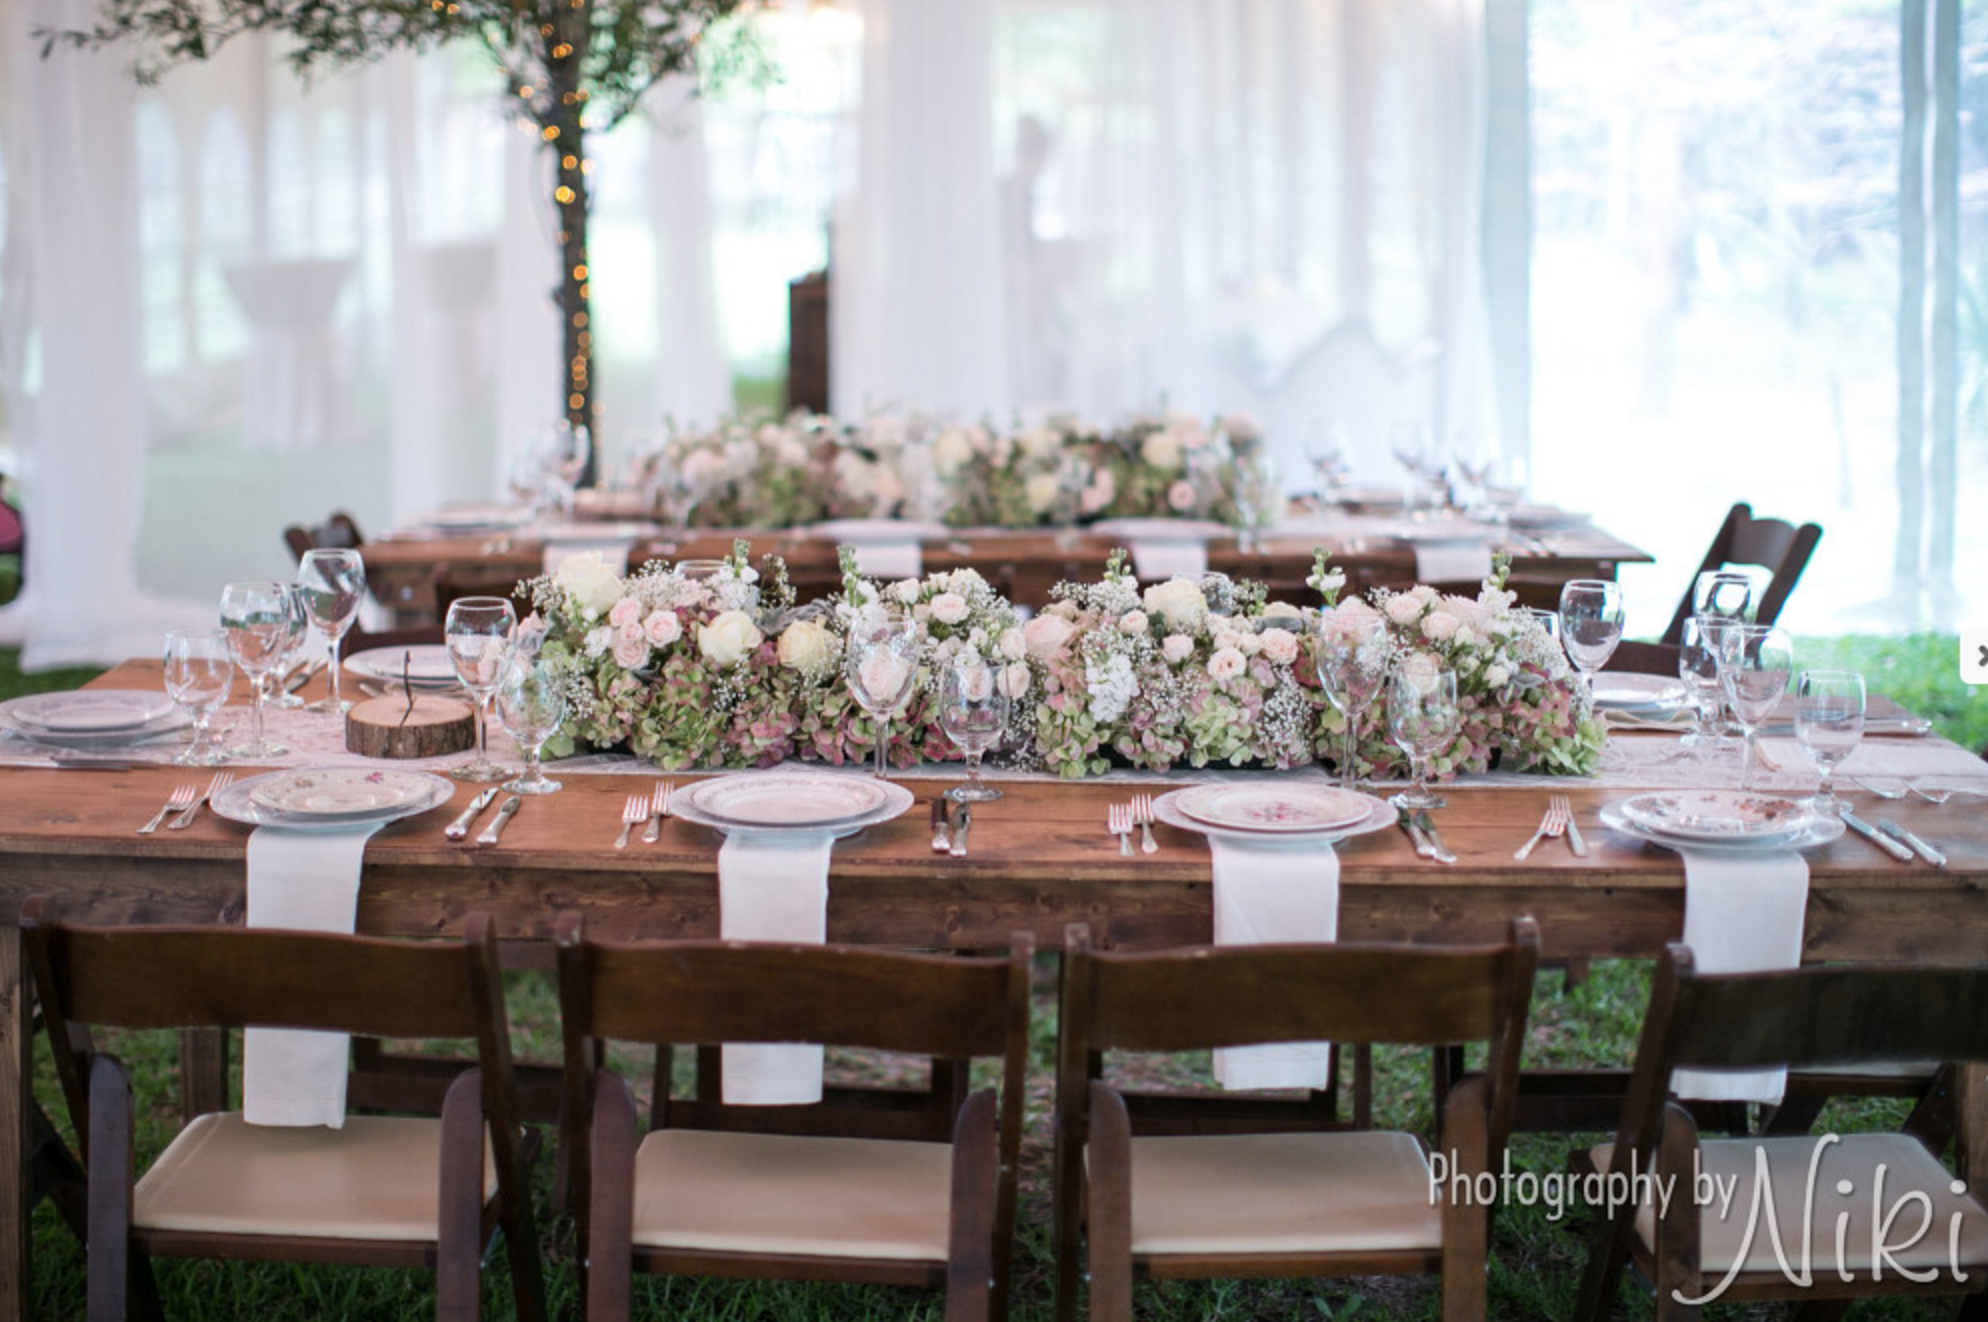 Event Rentals, Linens & Decor  in Houston – Any Occasion Party Rental